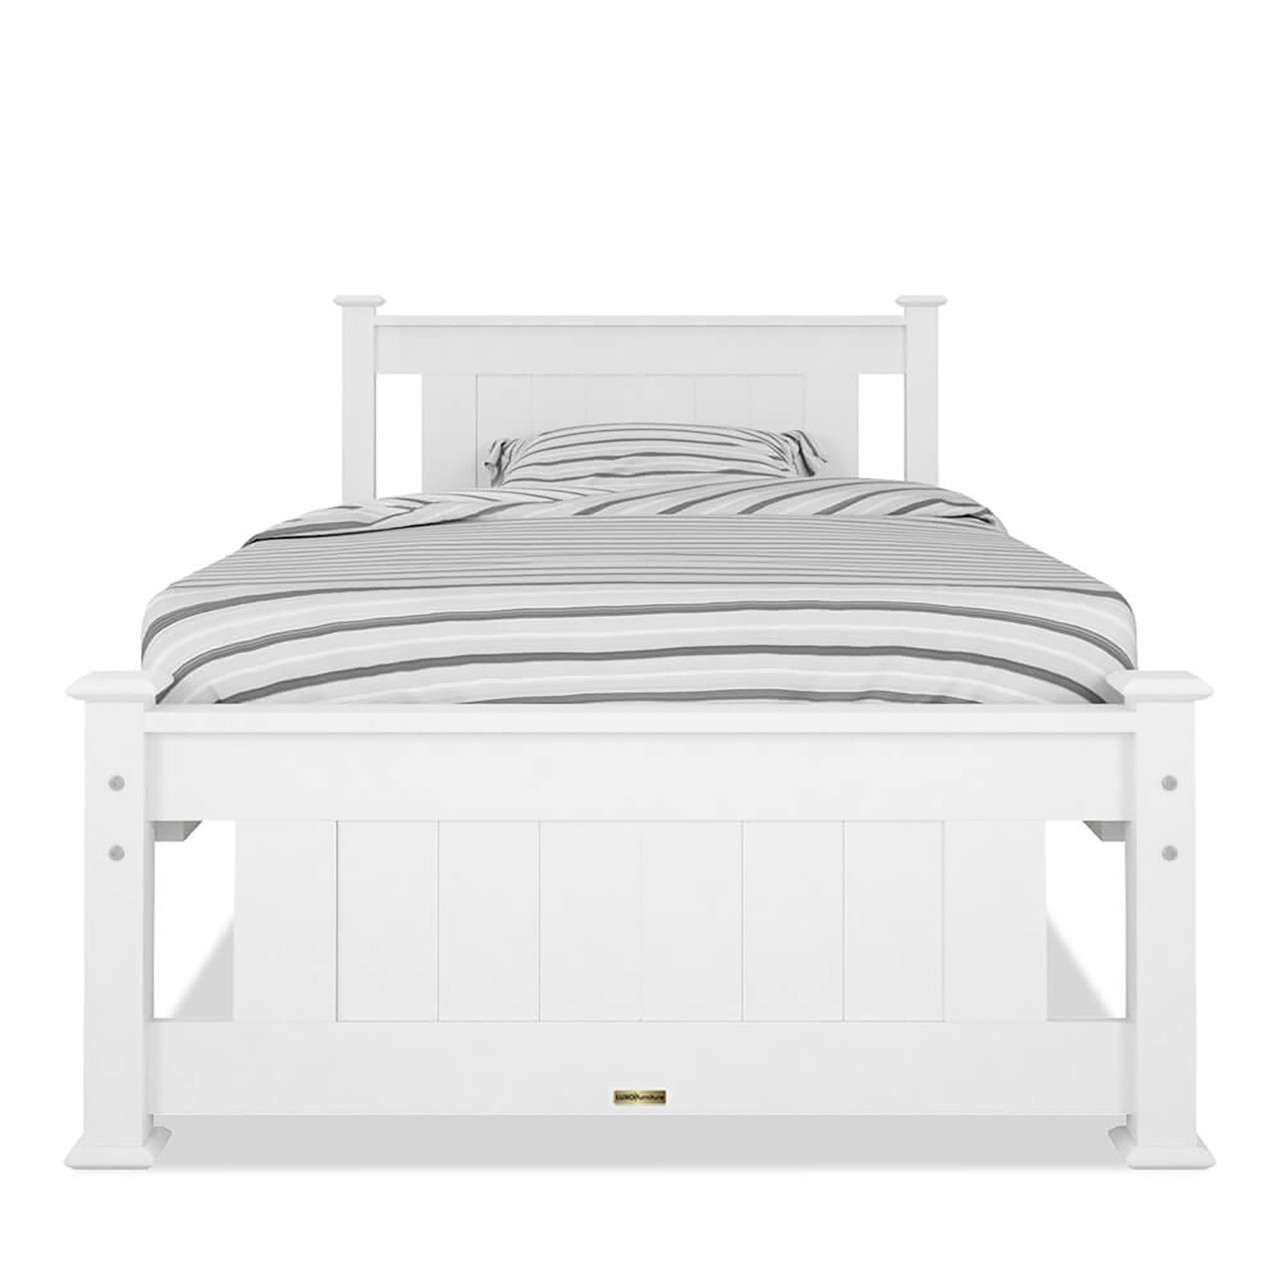 Beds & Mattresses Single Bed Frame Solid Pine Wood White